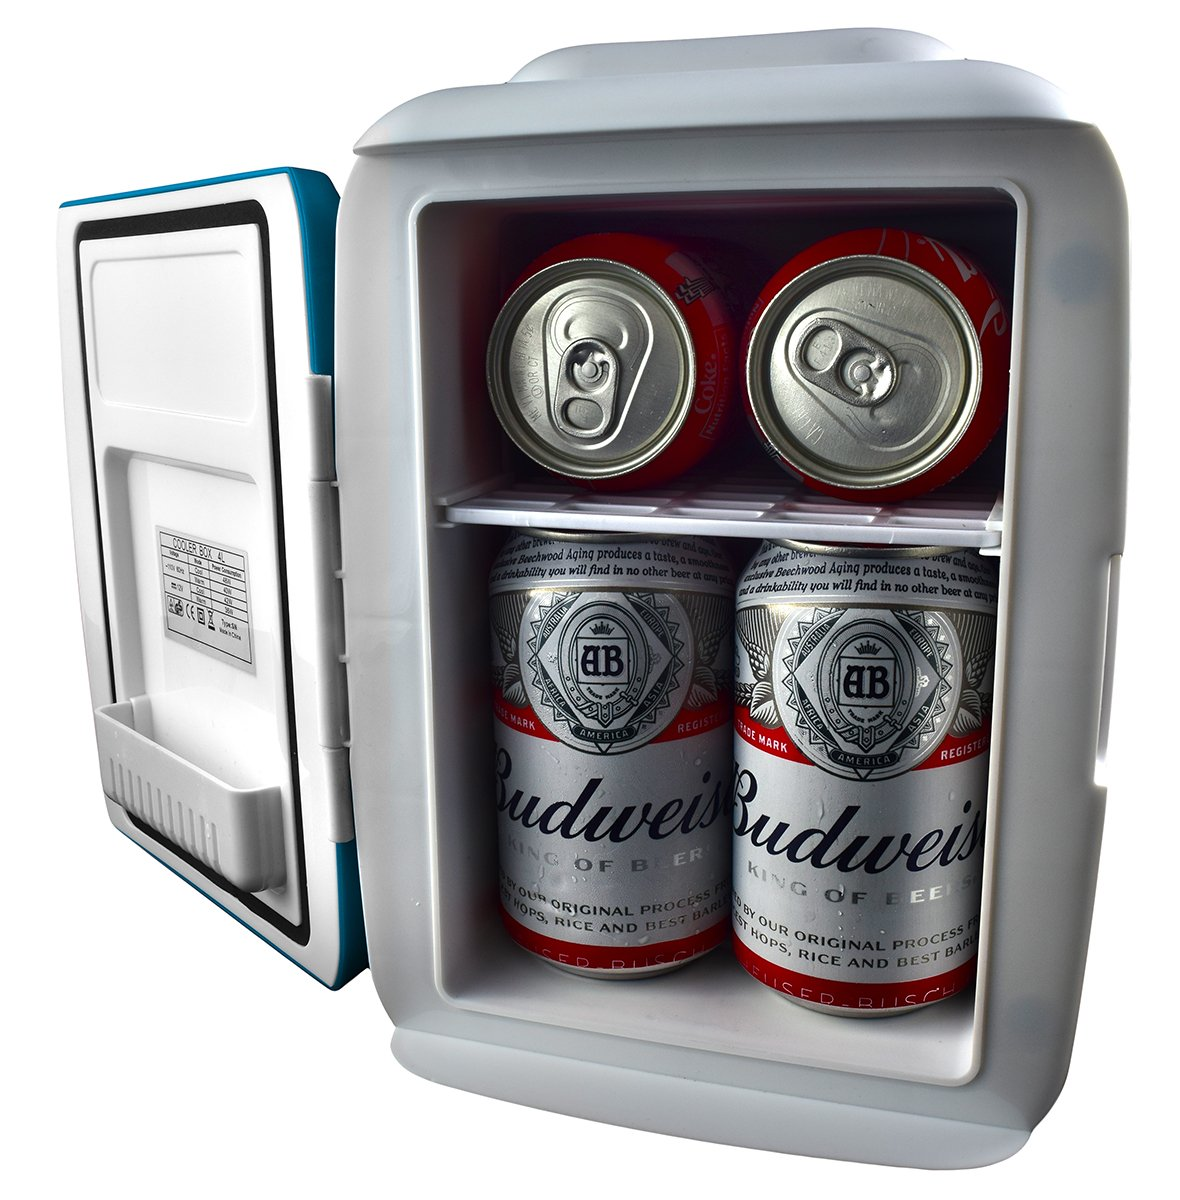 Amazon.com: Cooluli Mini Fridge Electric Cooler And Warmer (4 Liter/6 Can):  AC/DC Portable Thermoelectric System W/Exclusive On The Go USB Power Bank  Option ...